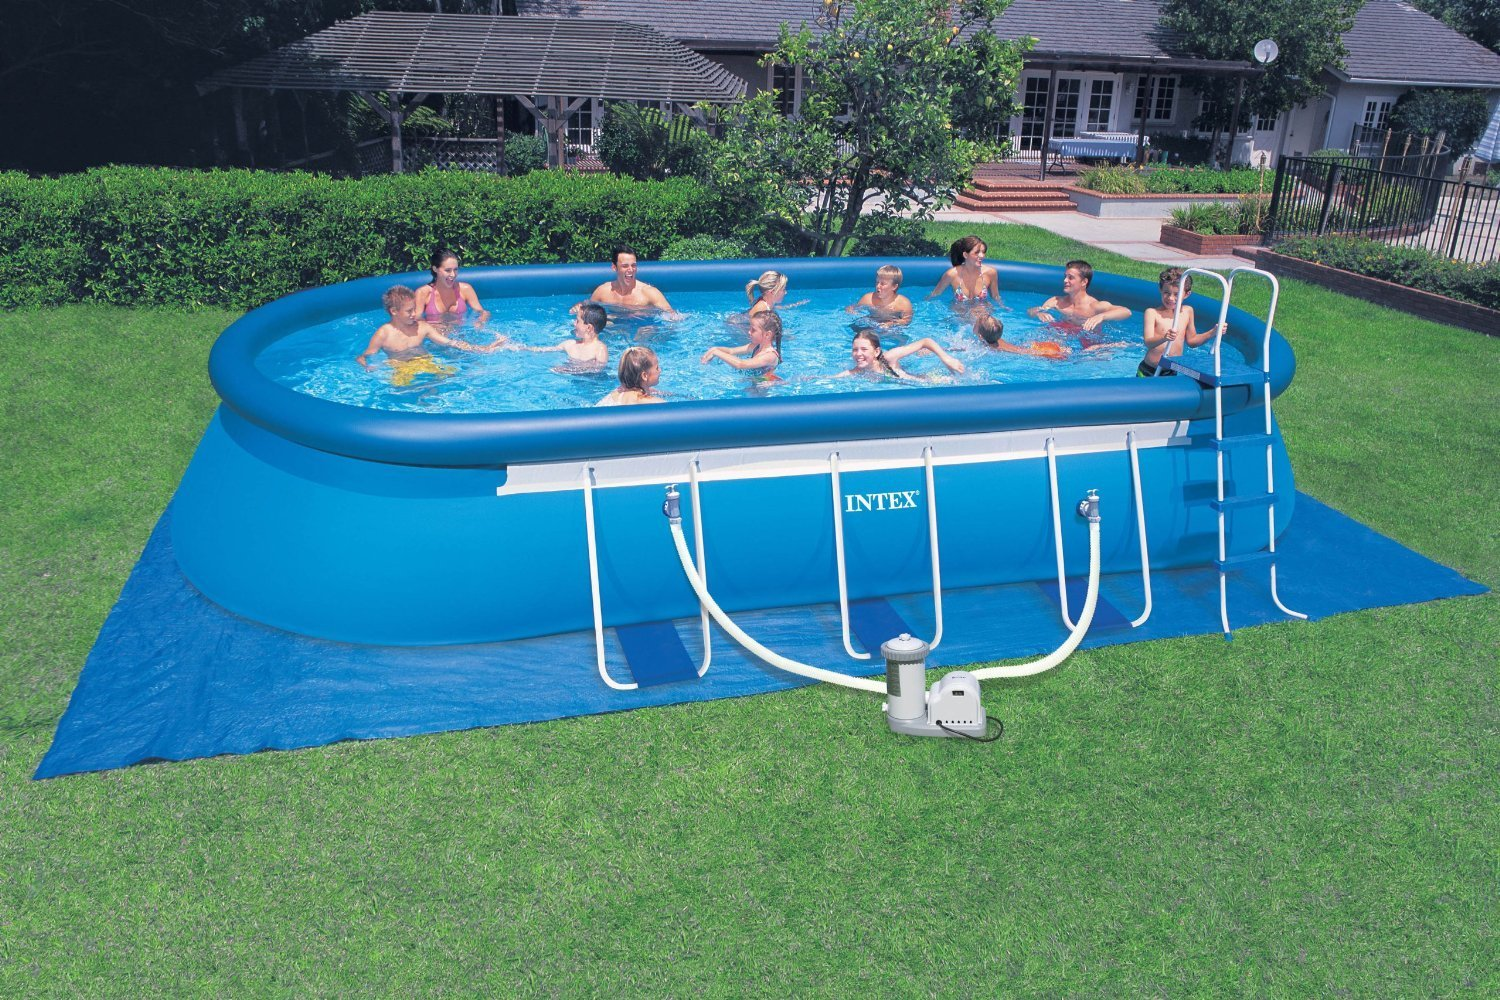 Buy Intex 57981eg 20 Feet By 12 Feet By 48 Oval Frame Pool